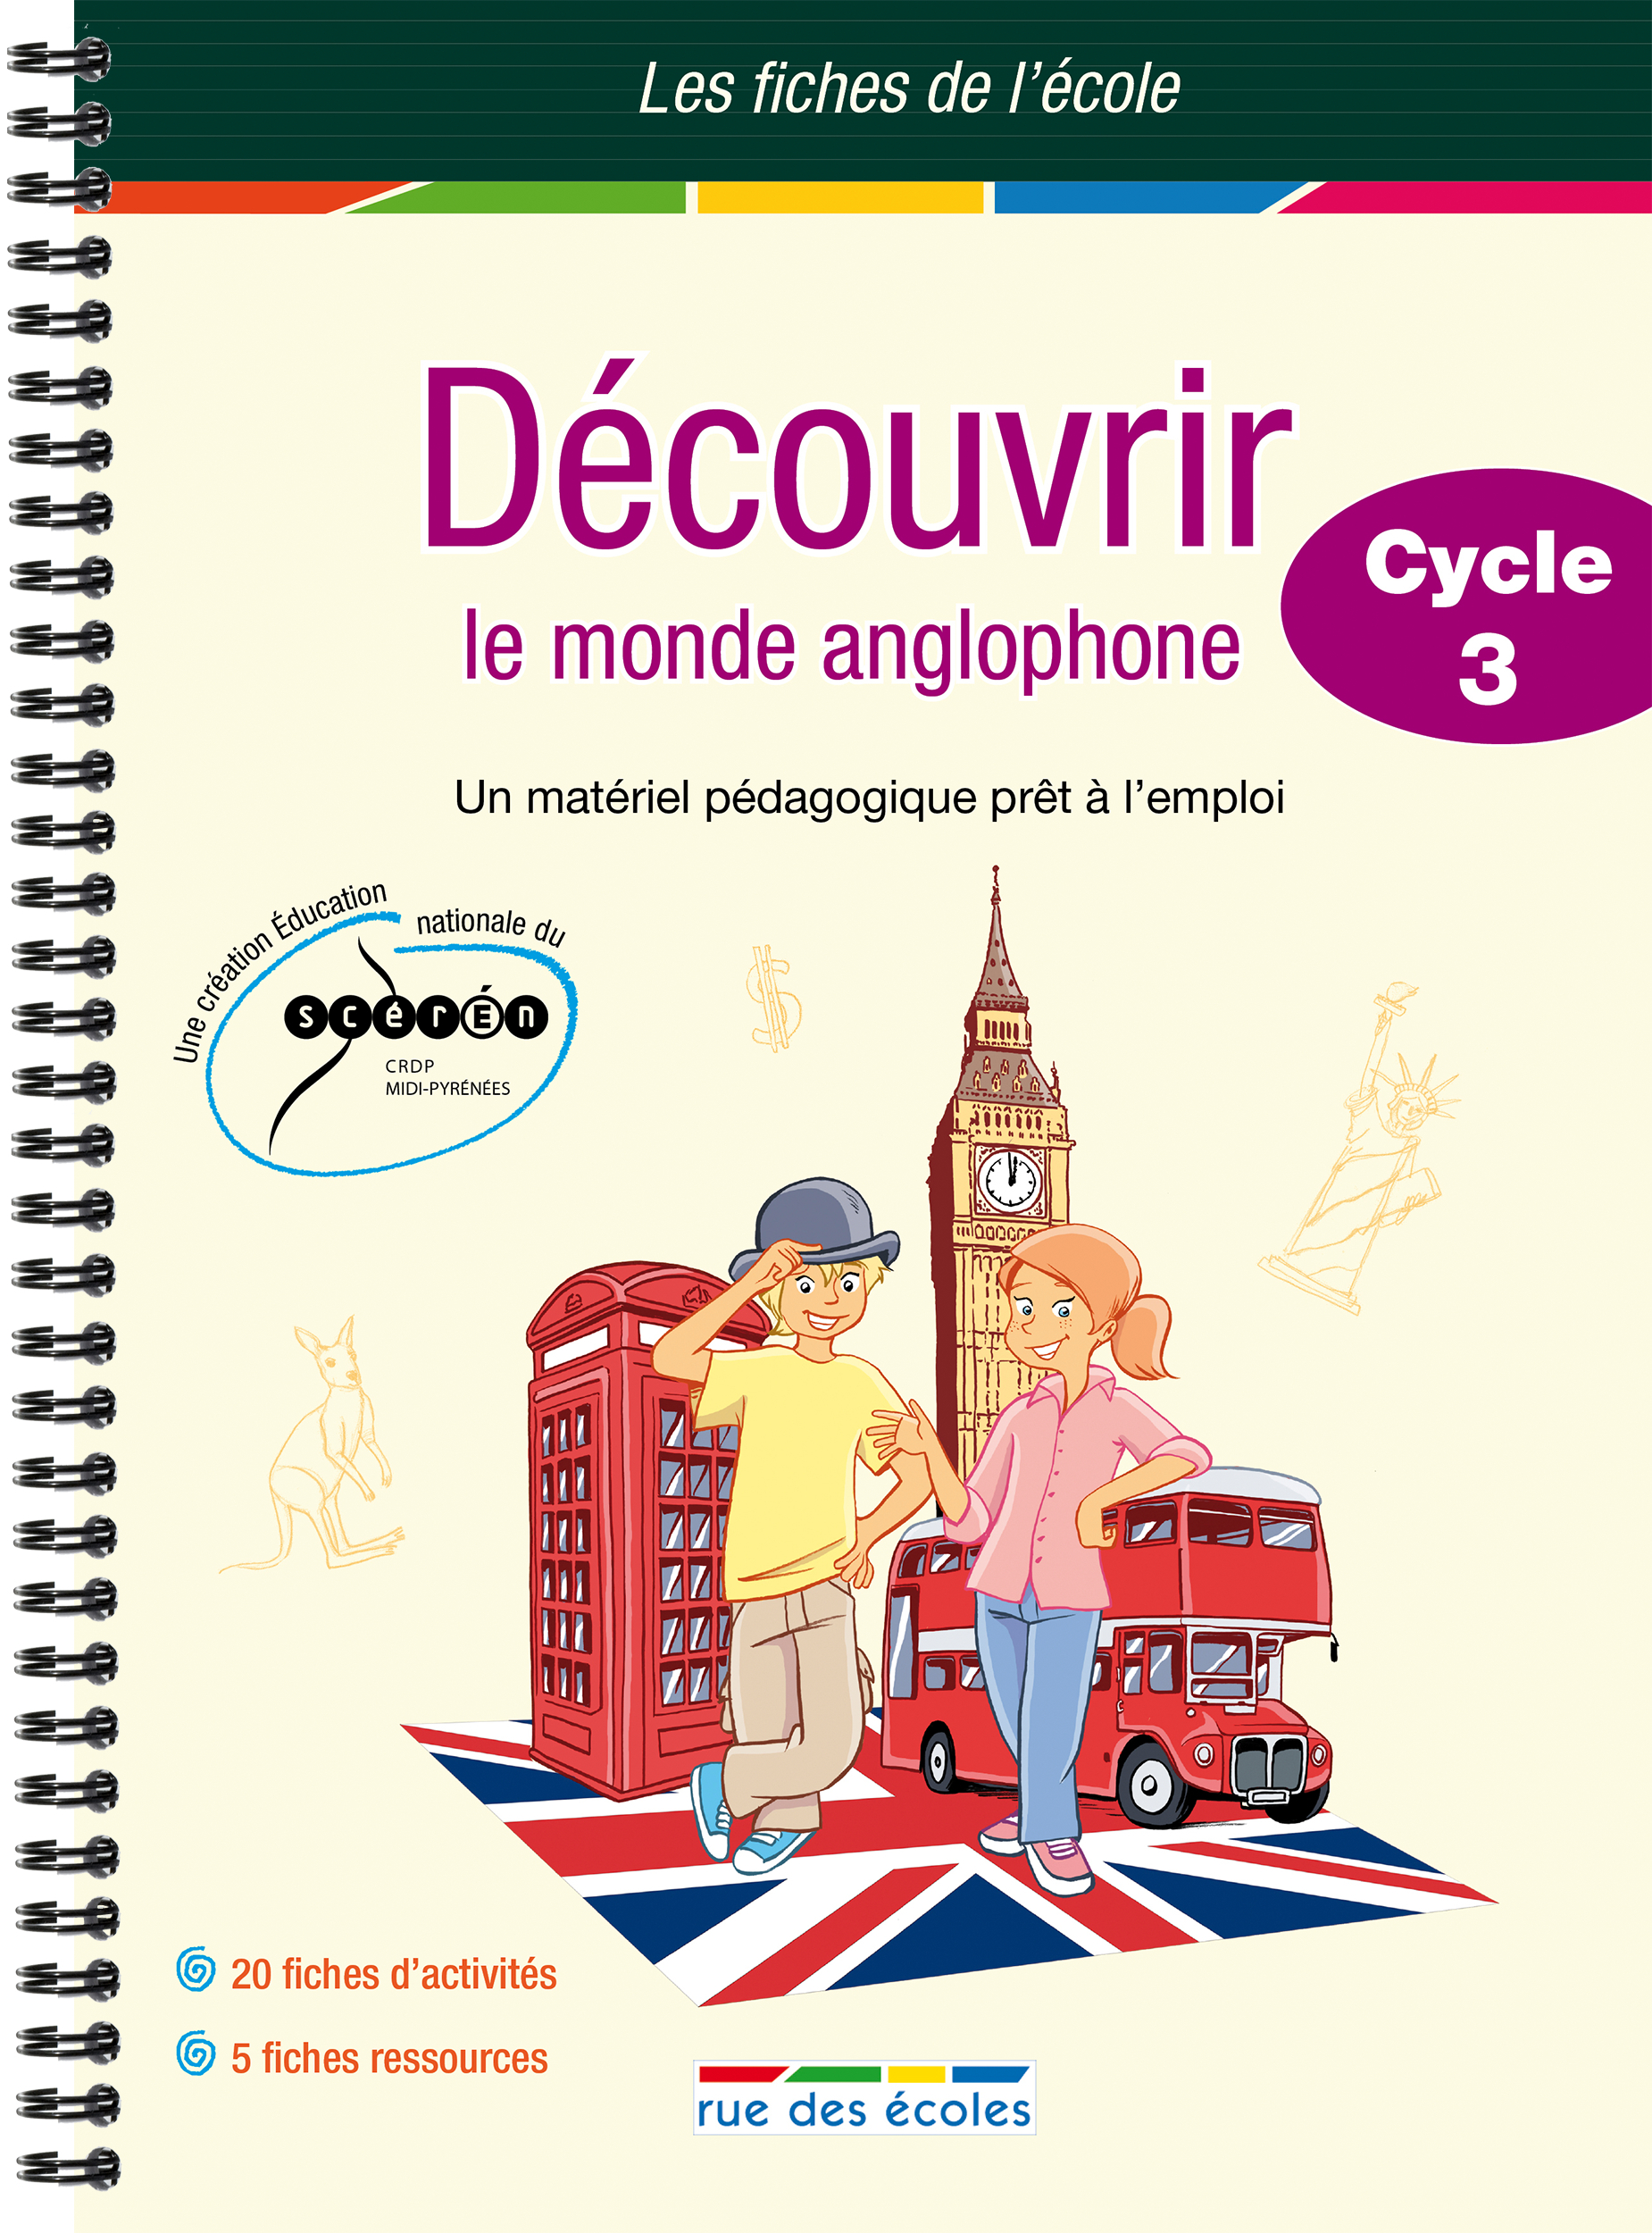 DECOUVRIR LE MONDE ANGLOPHONE CYCLE 3